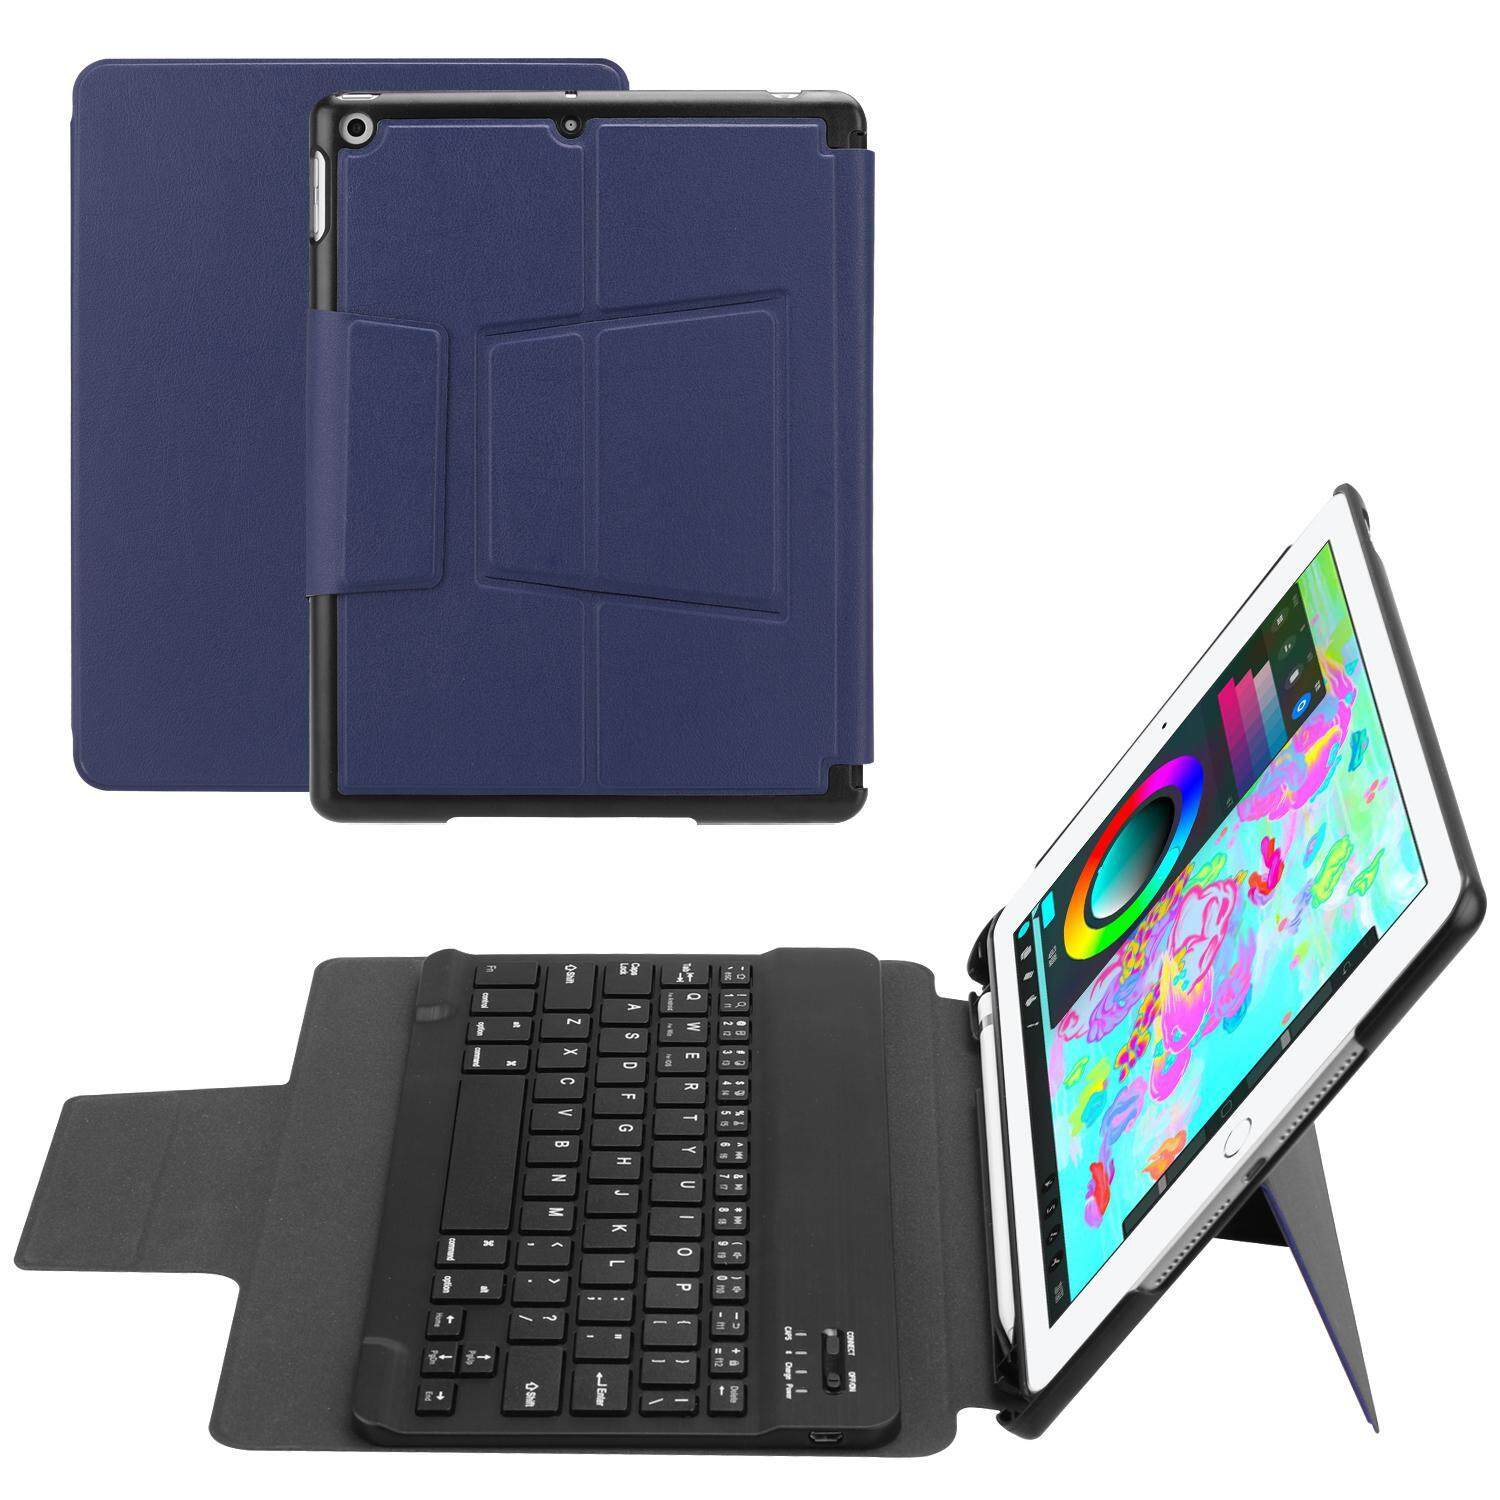 GoodScool Applicable to ipad 9.7 (2017/2018 version) with detachable aluminum alloy keyboard